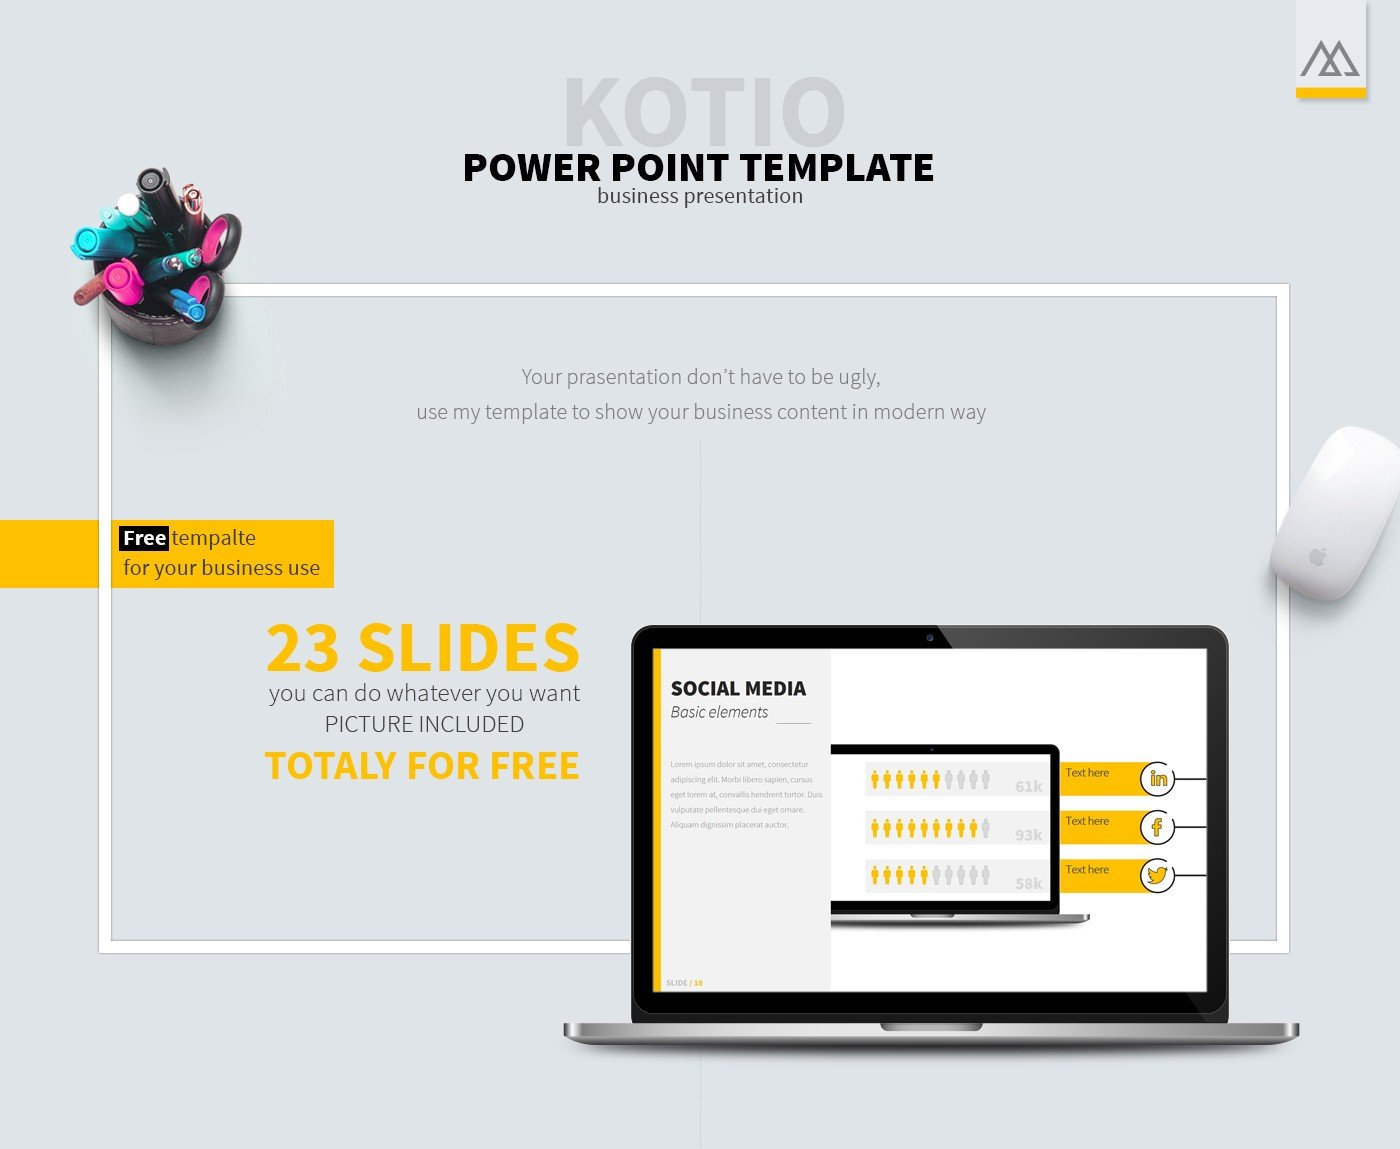 Powerpoint Presentation Outline Example 40 Free Cool Powerpoint Templates for Presentations